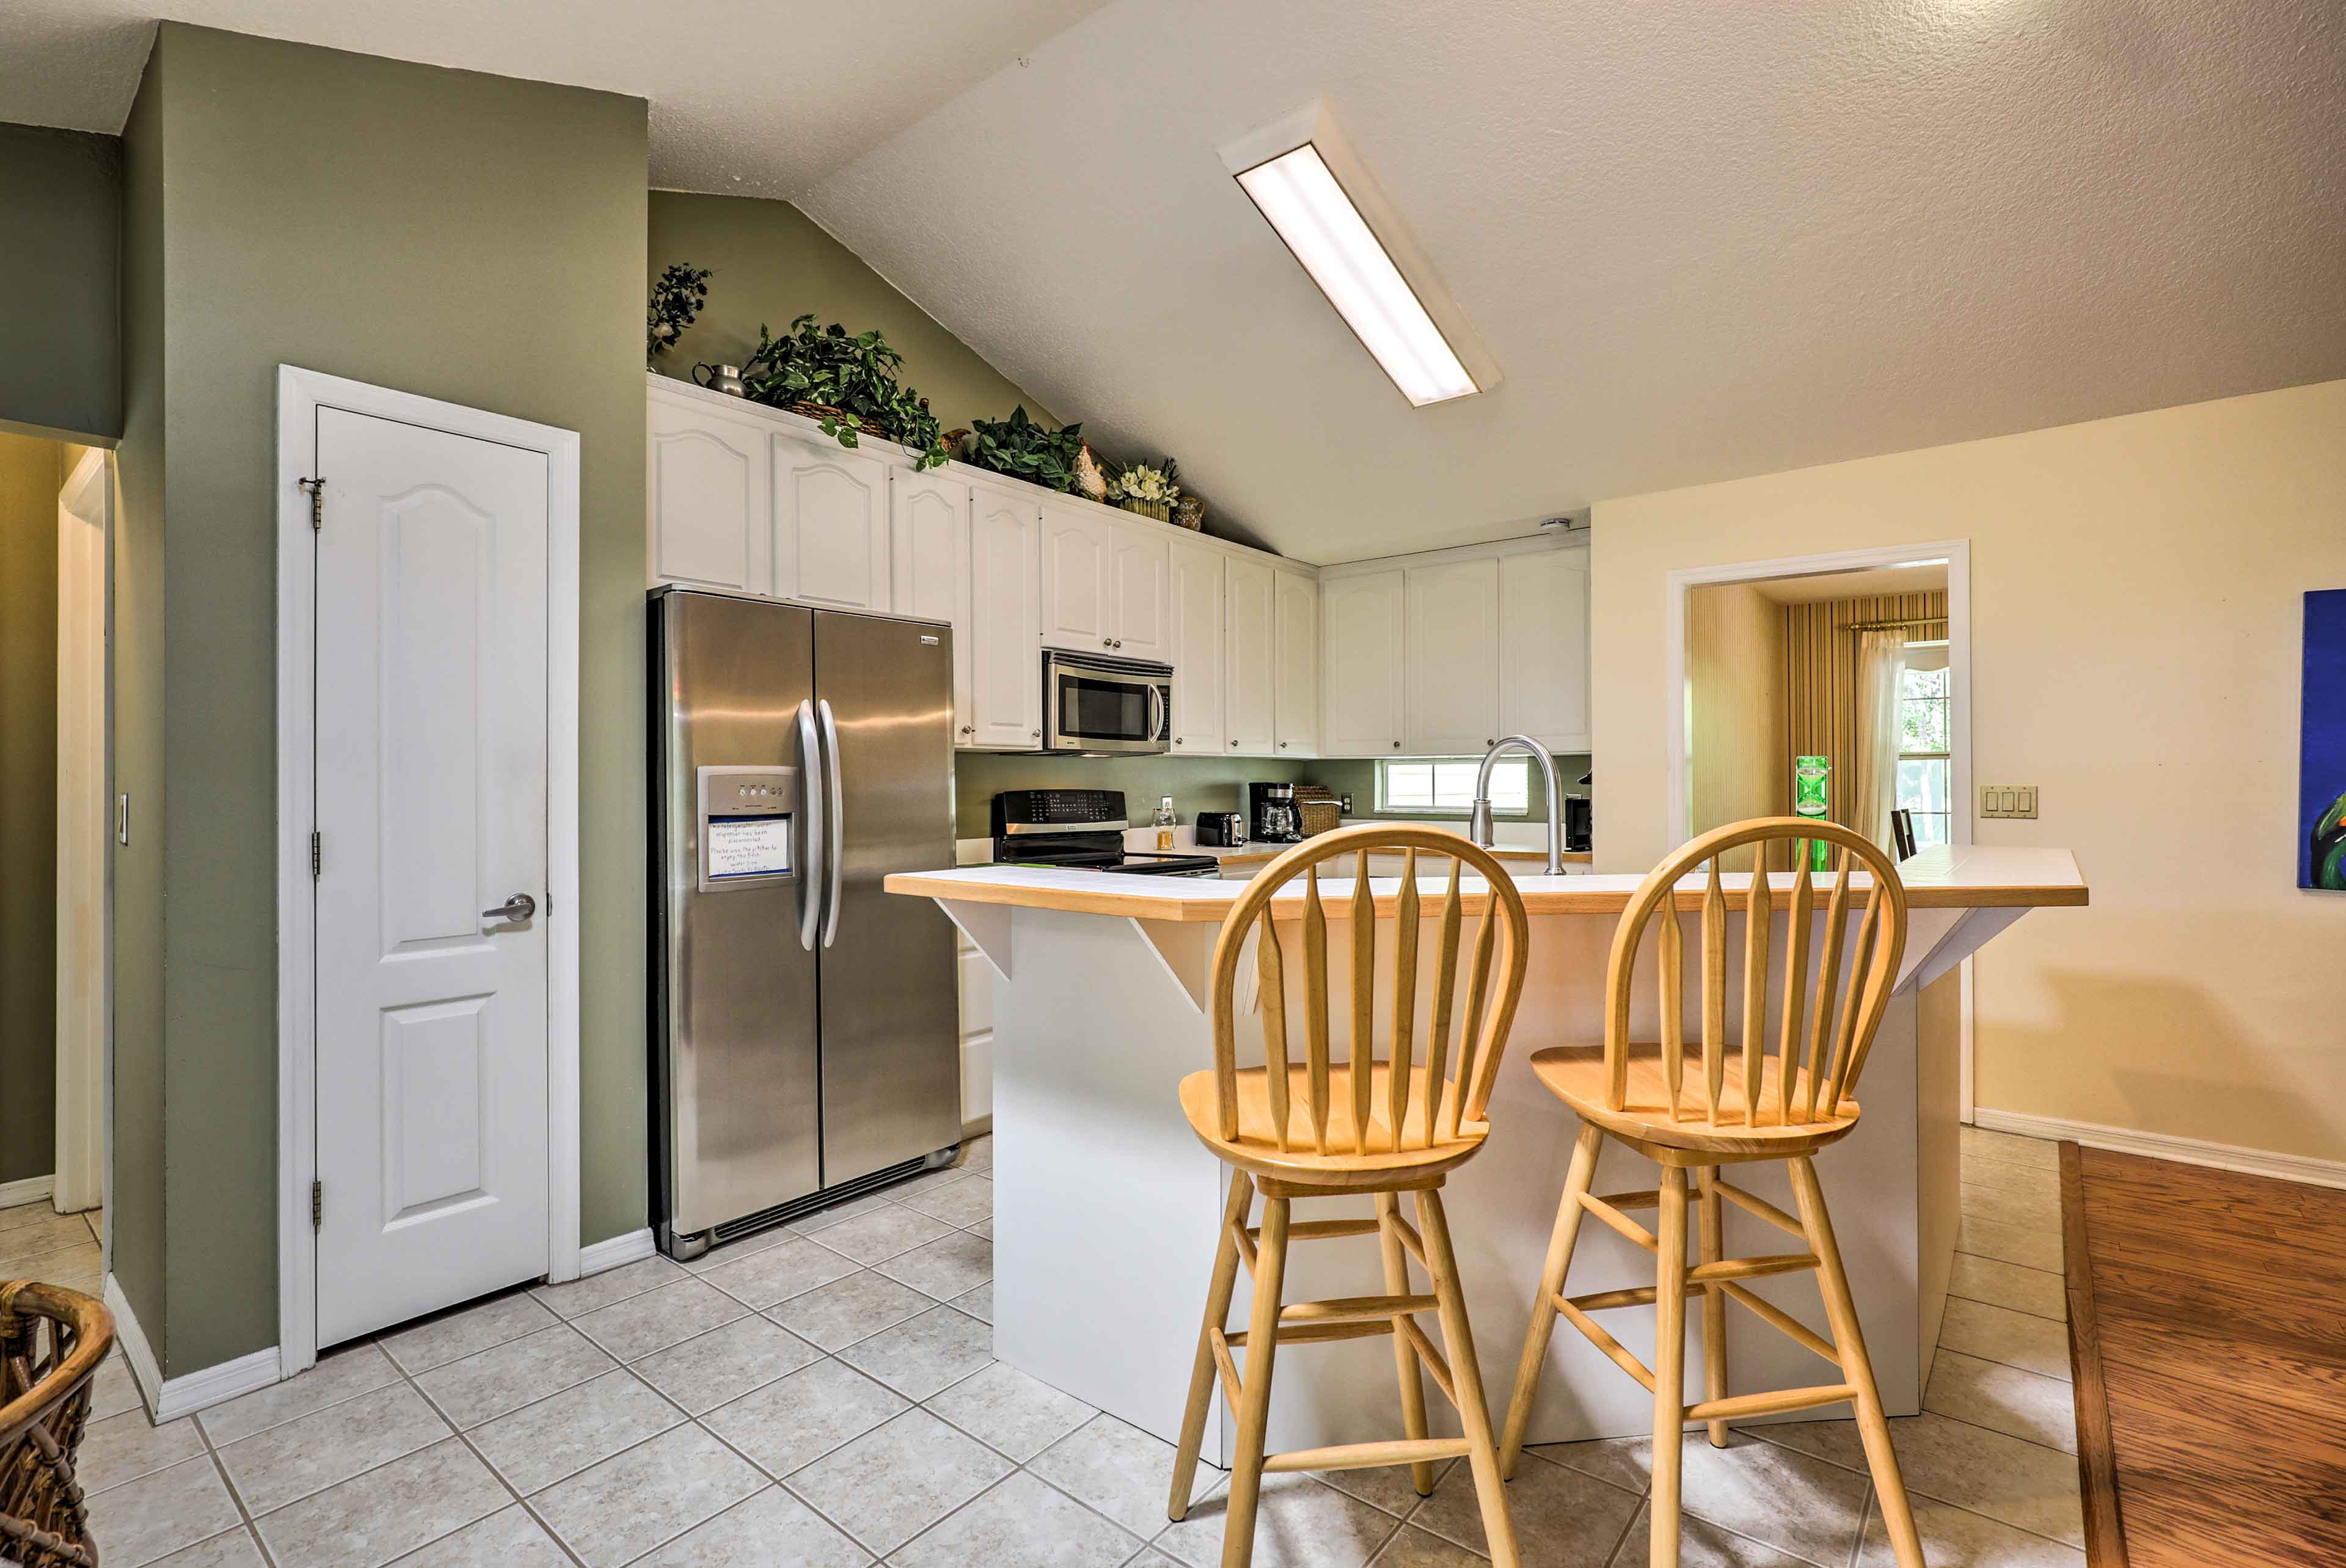 The fully equipped kitchen has ample storage and stainless steel appliances.